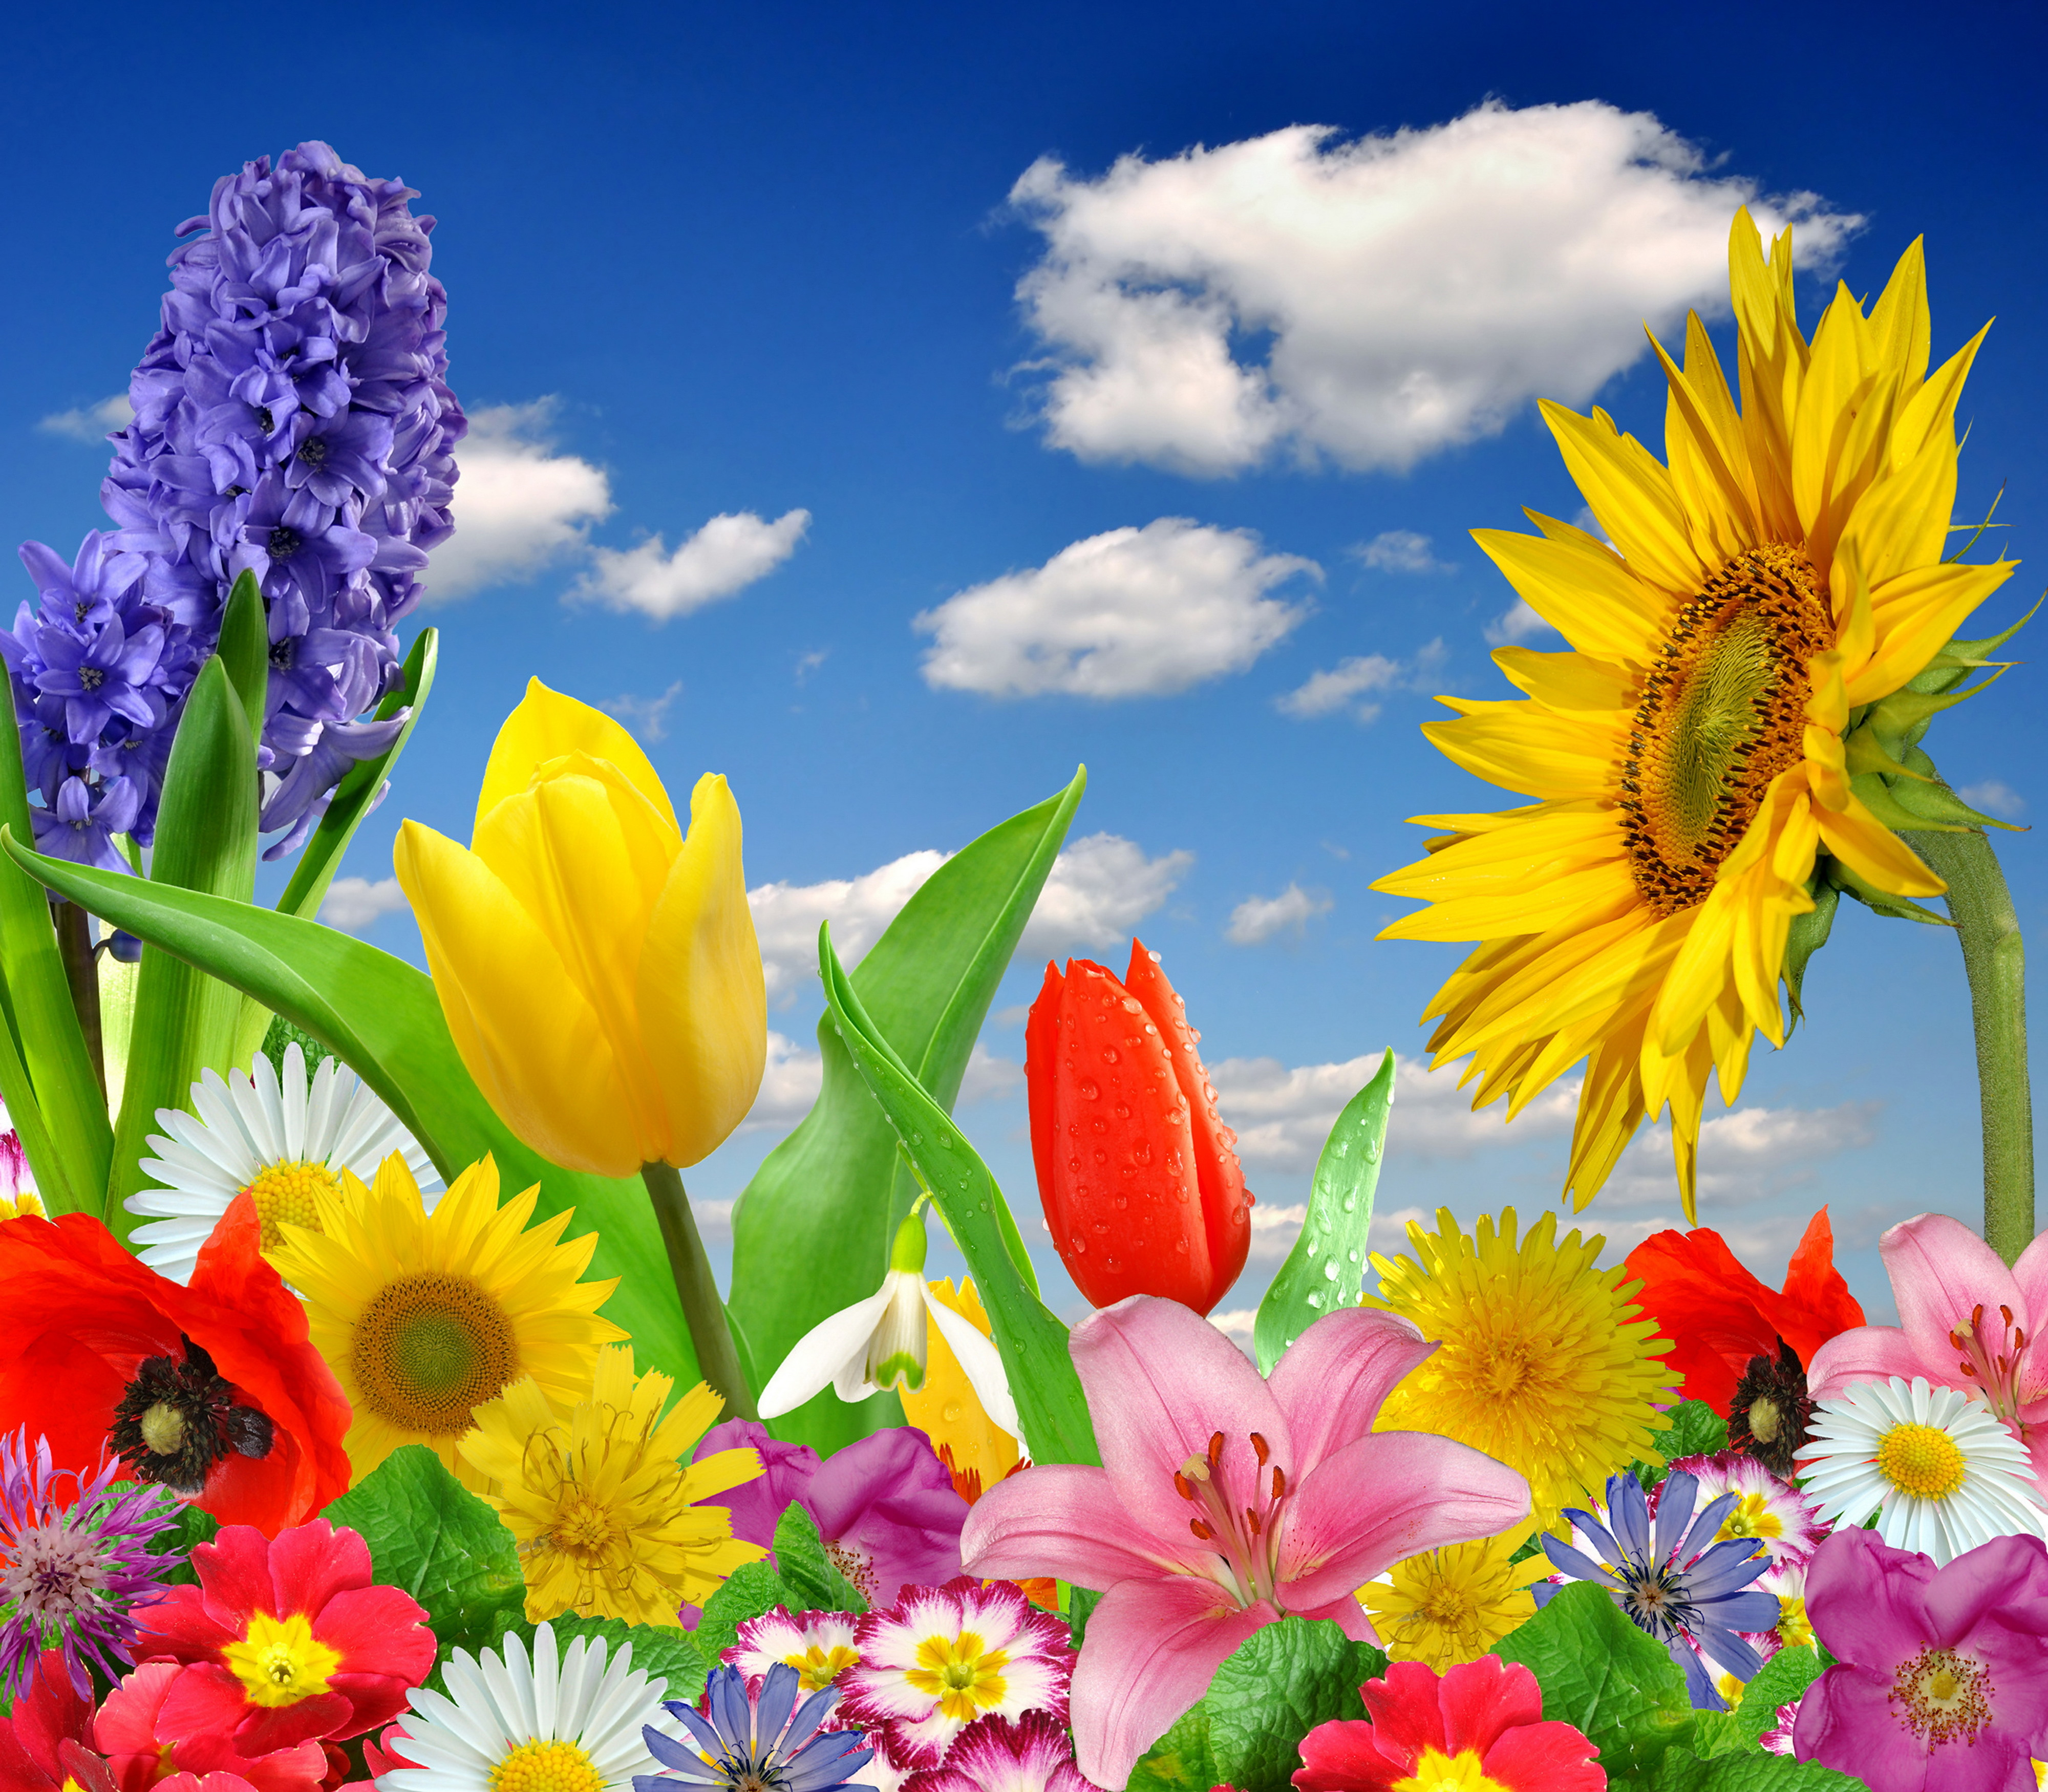 Spring Pictures: [31+] Spring Colorful Wallpapers On WallpaperSafari